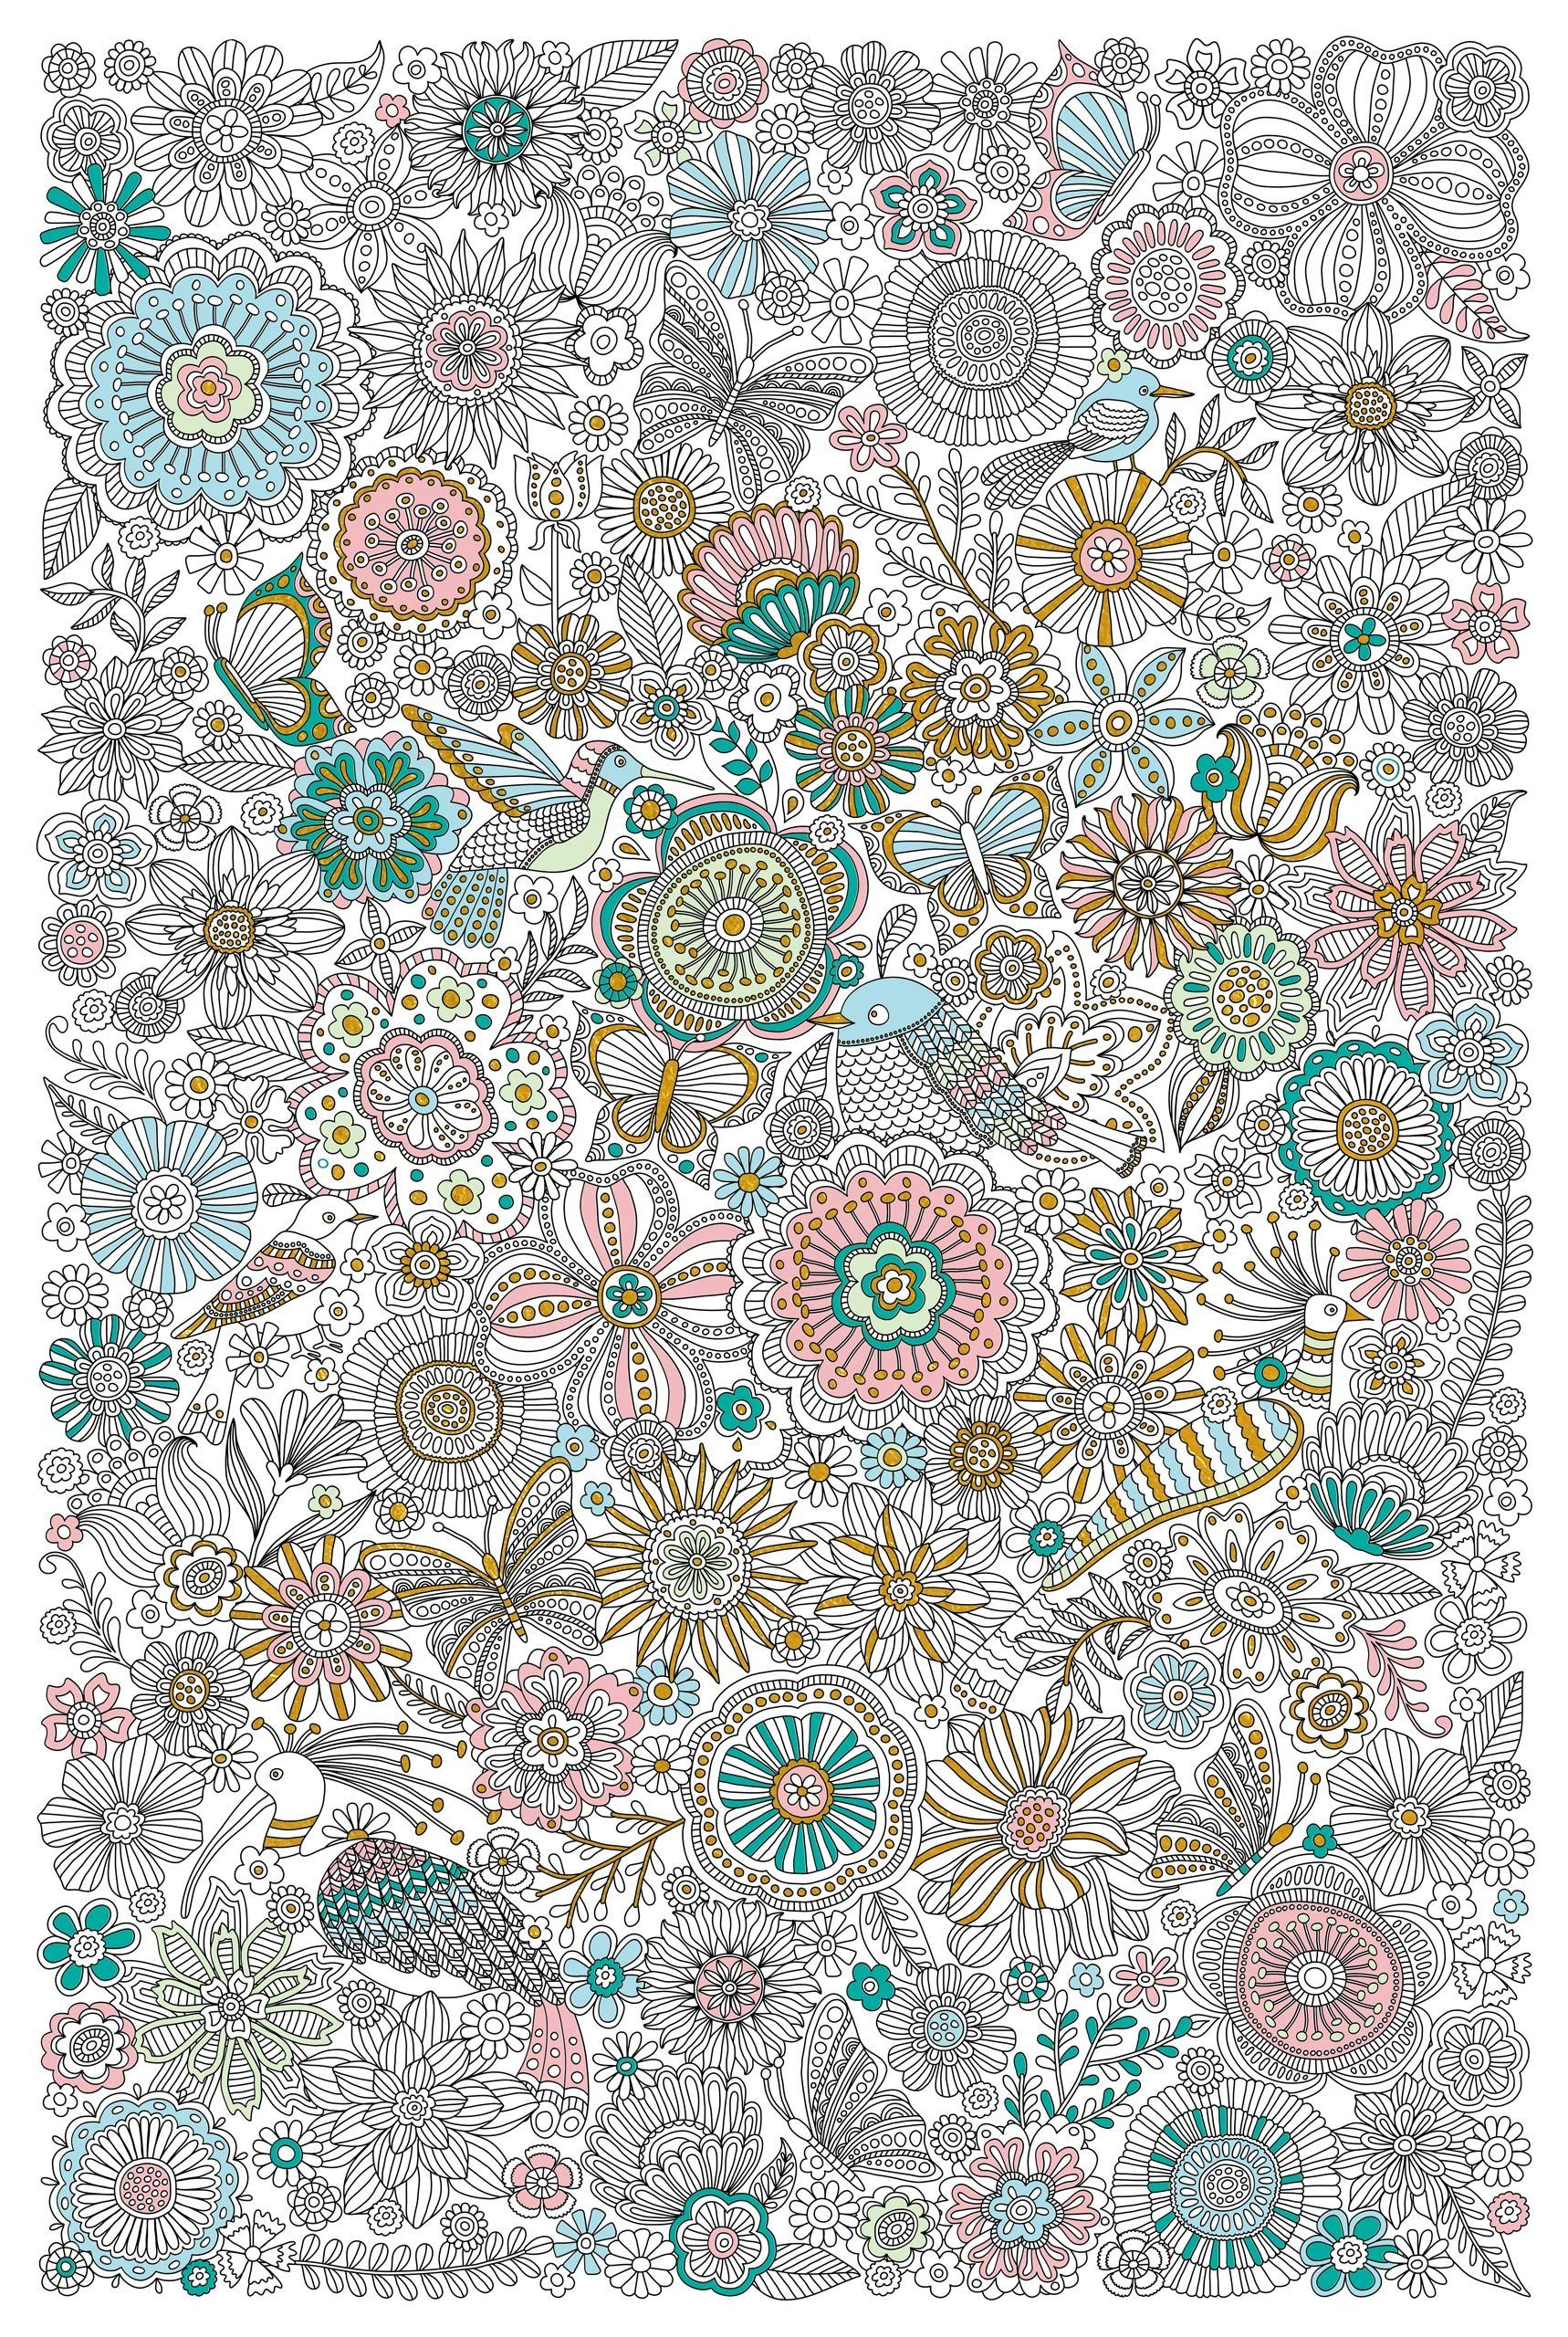 The coloring book poster - Blooms Birds Butterflies Poster Coloring Bookbutterflies